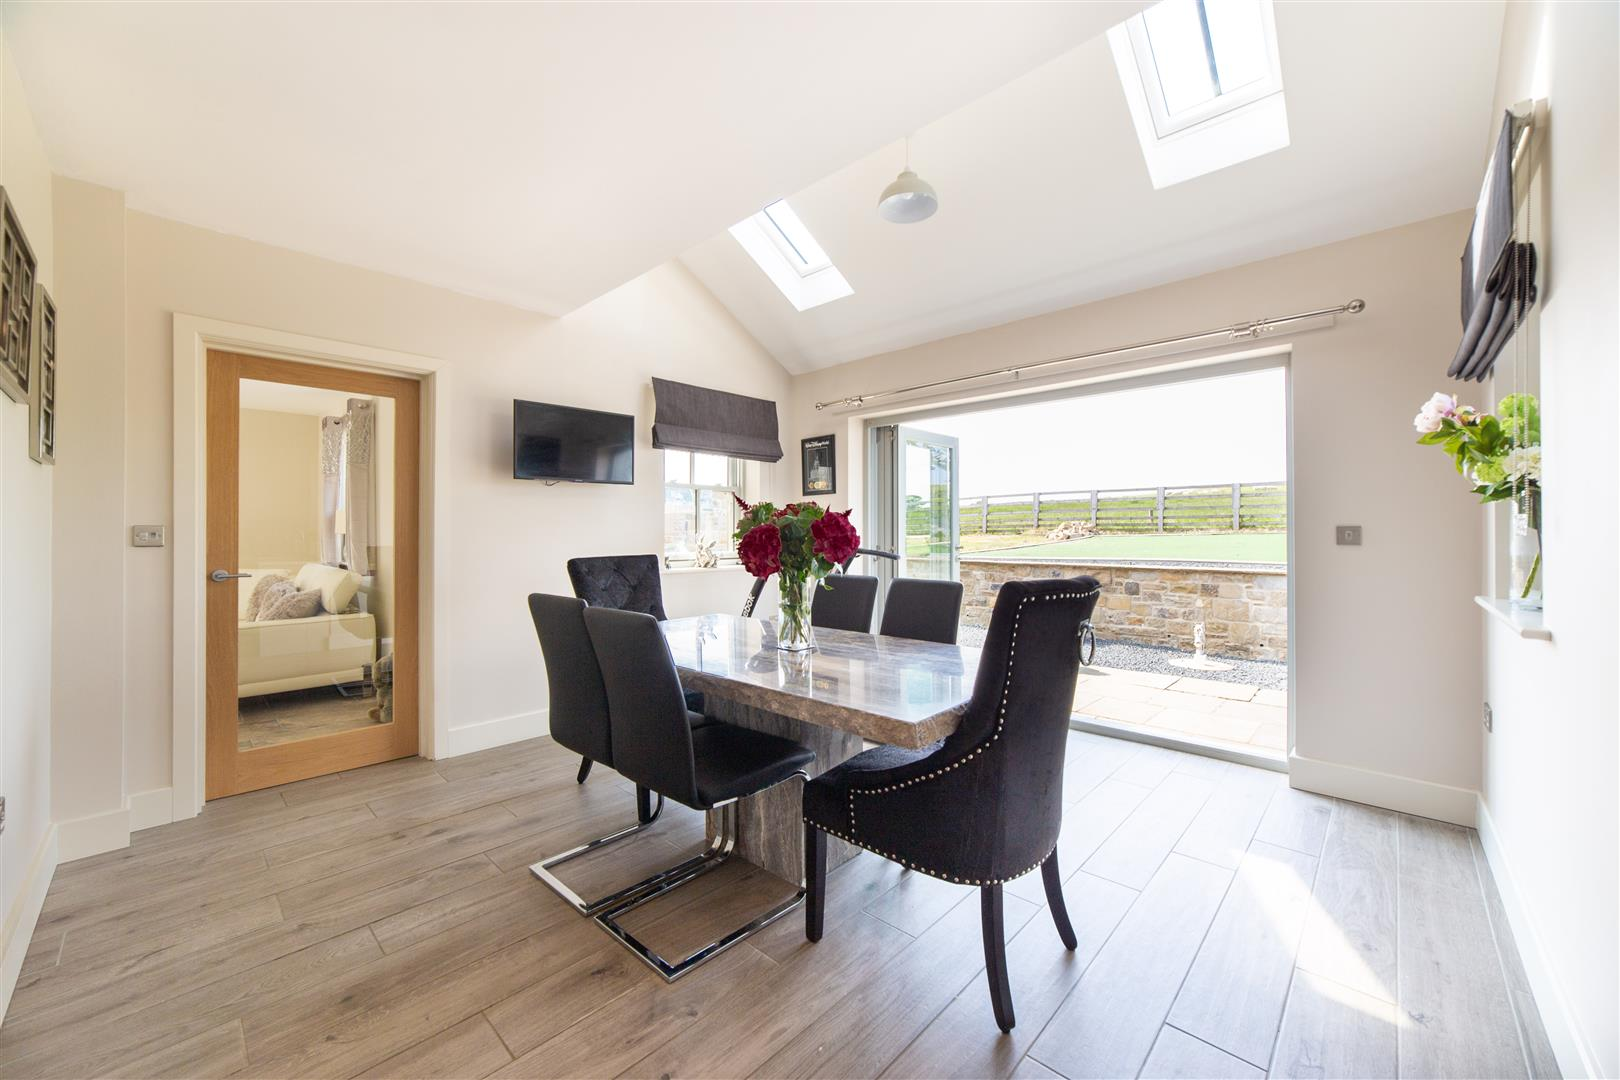 4 bed detached house for sale, Hexham 4